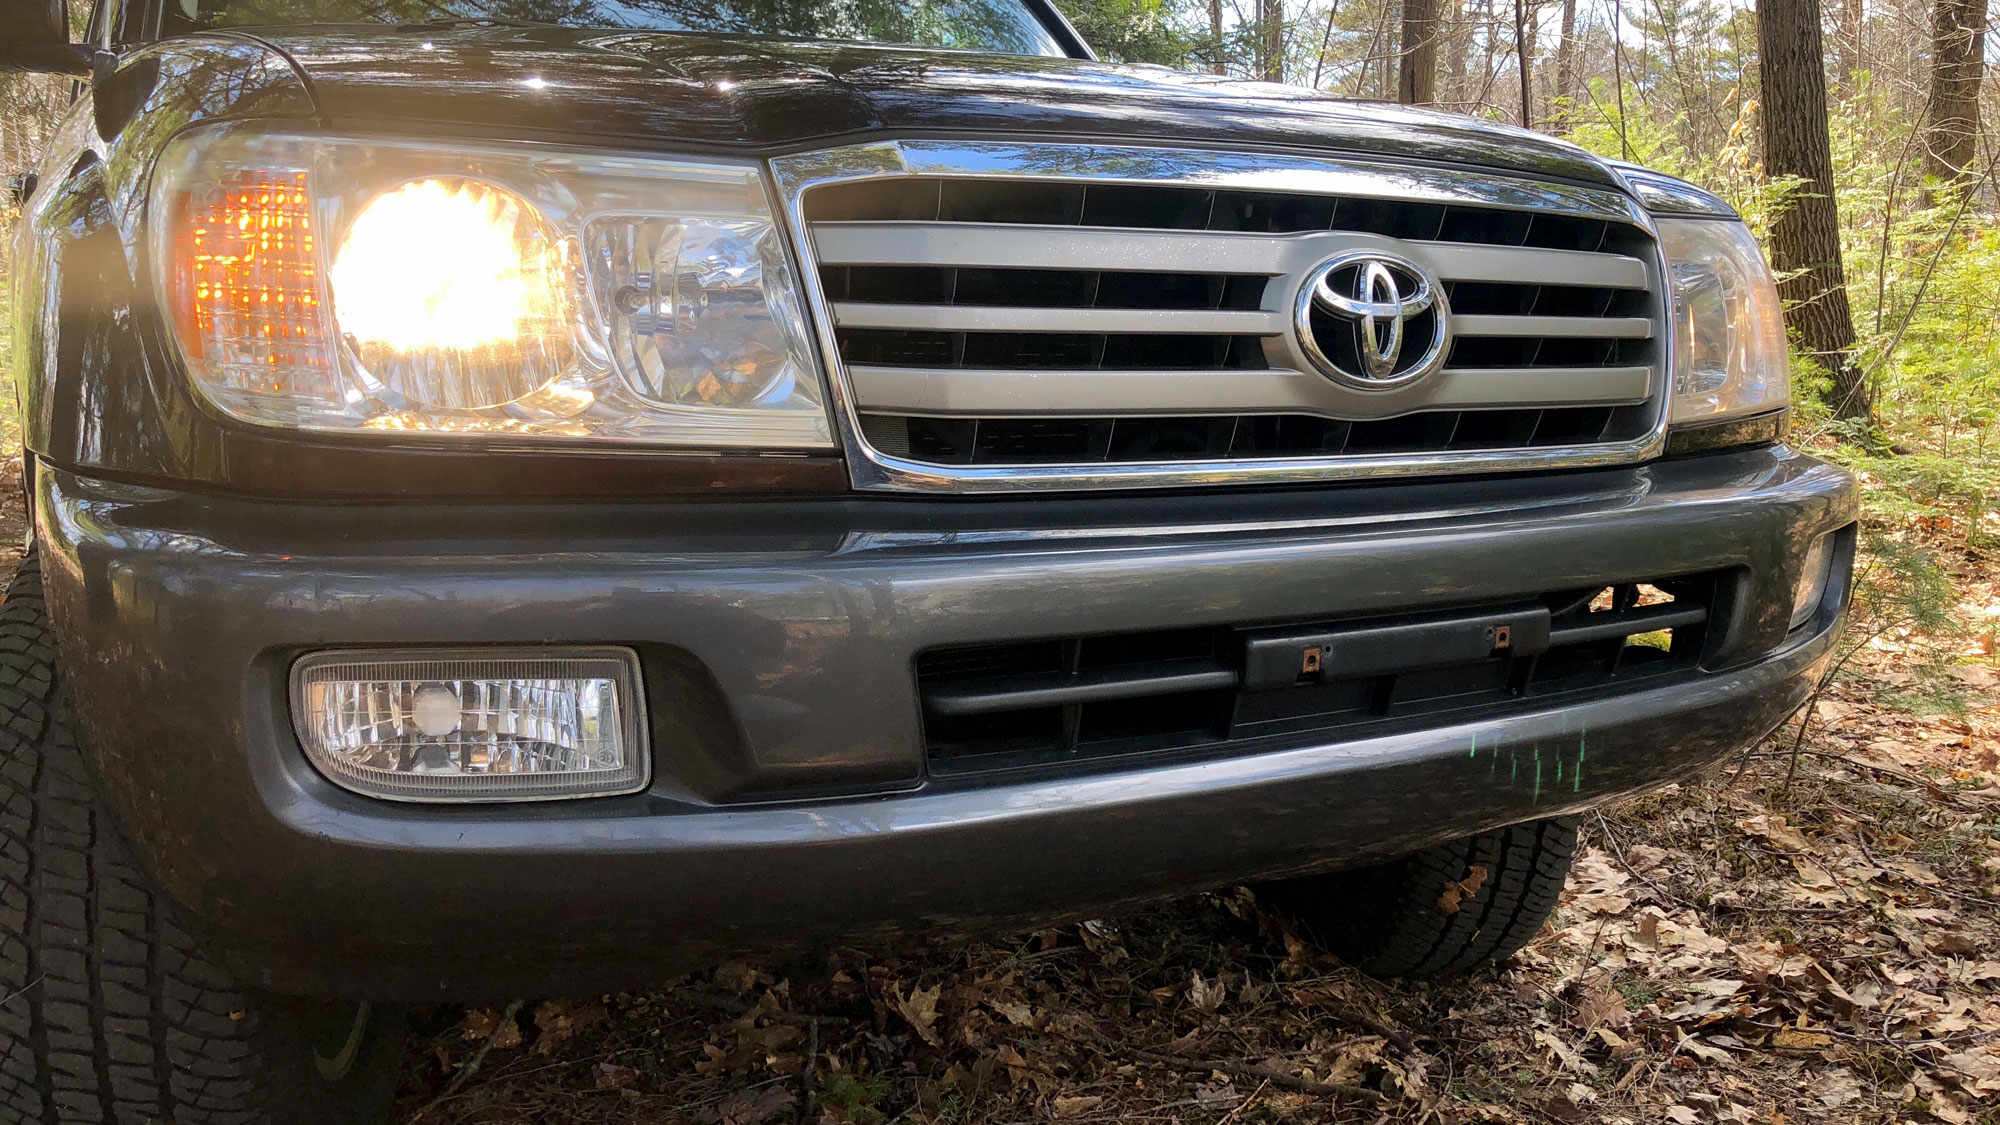 2007 Toyota Land Cruiser 100 Series Uzj100 Sold Nicanorth This A Very Nice Well Maintained Two Owner It Has Toyotas Factory Undercoating Which Preserved The Frame